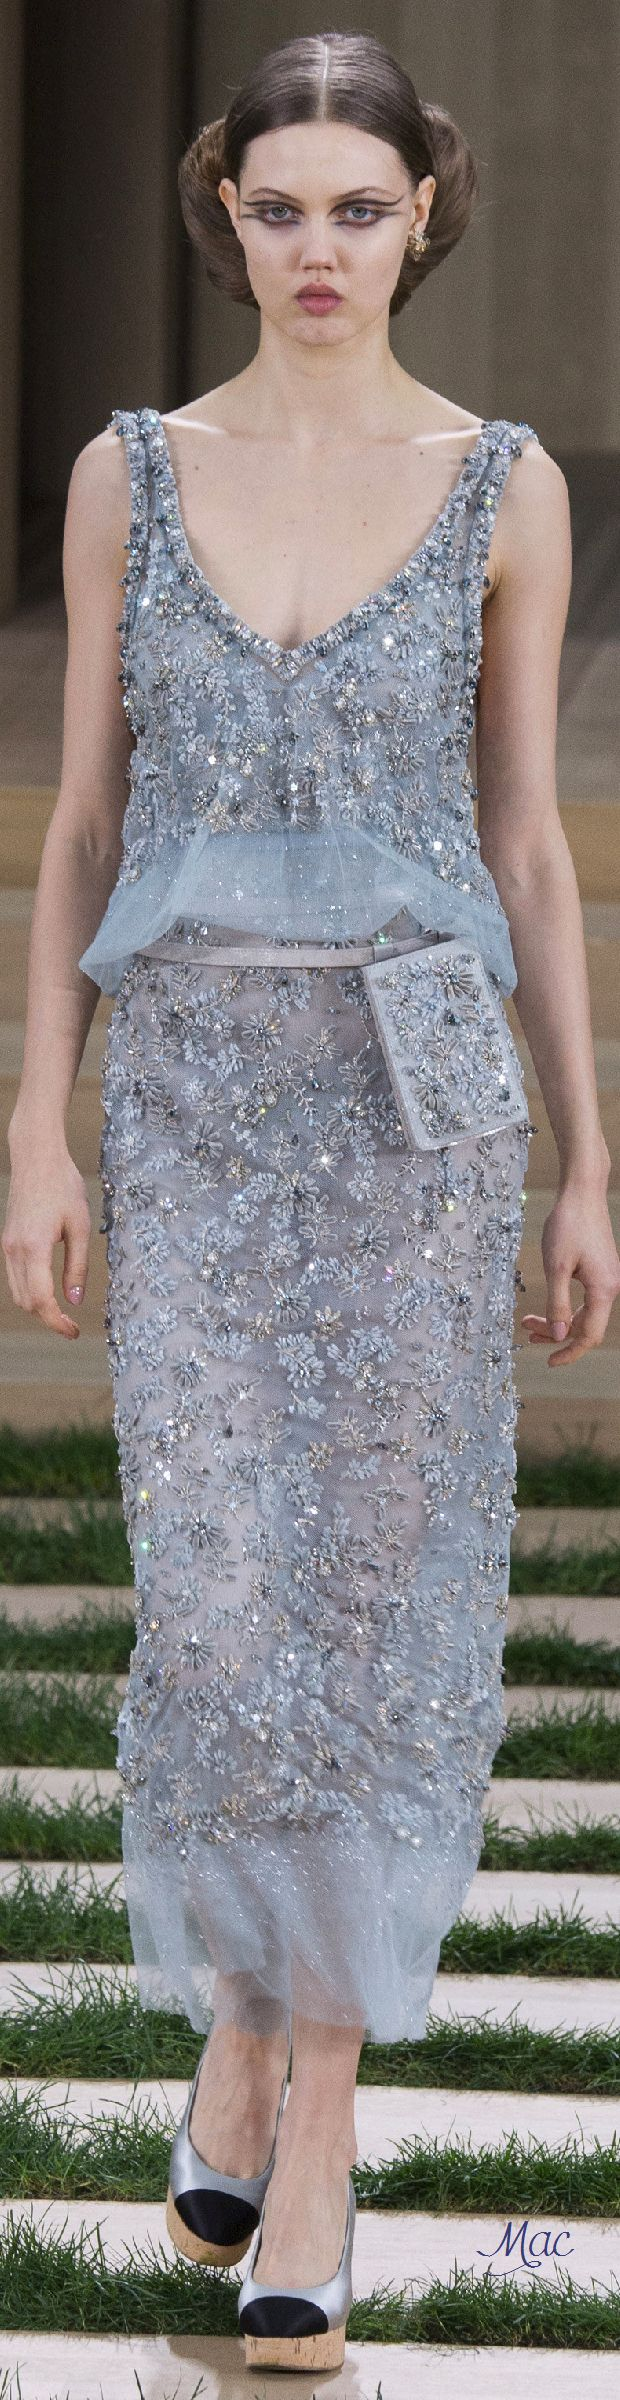 Spring 2016 Haute Couture Chanel.   EWWWWW  Want us to pay for your shopping and your travel? Also you have to do is refer us to someone looking to make a hire. contact me at carlos@recruitingforgood.com